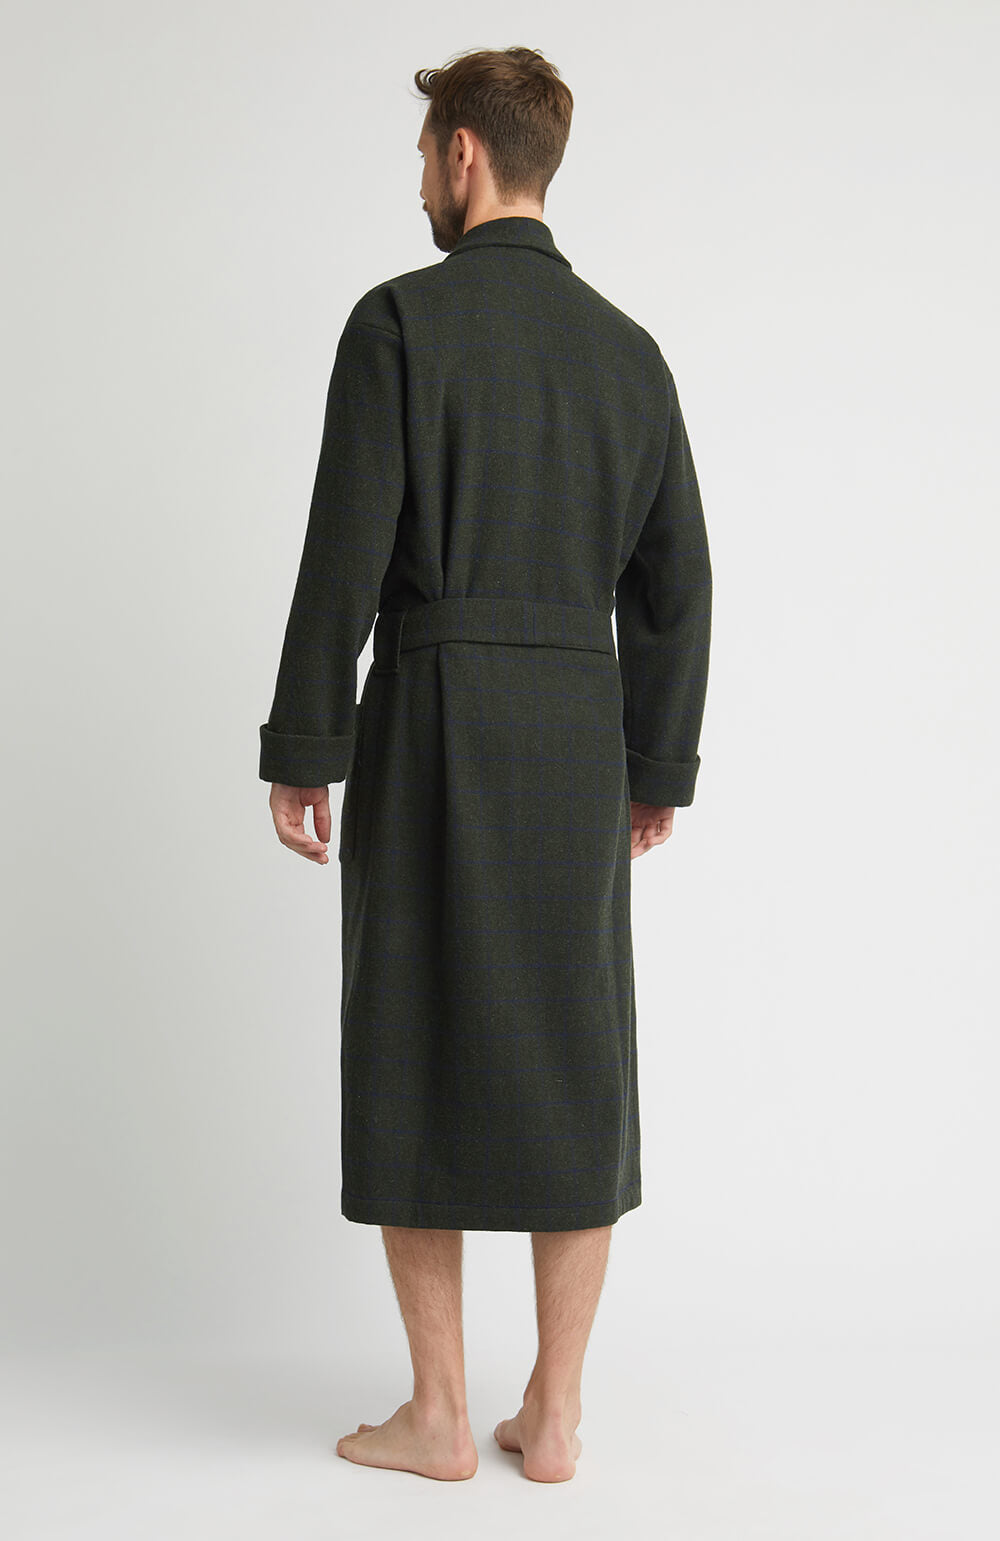 Luxury Silk-Lined Green Check Wool Robe | Bonsoir of London